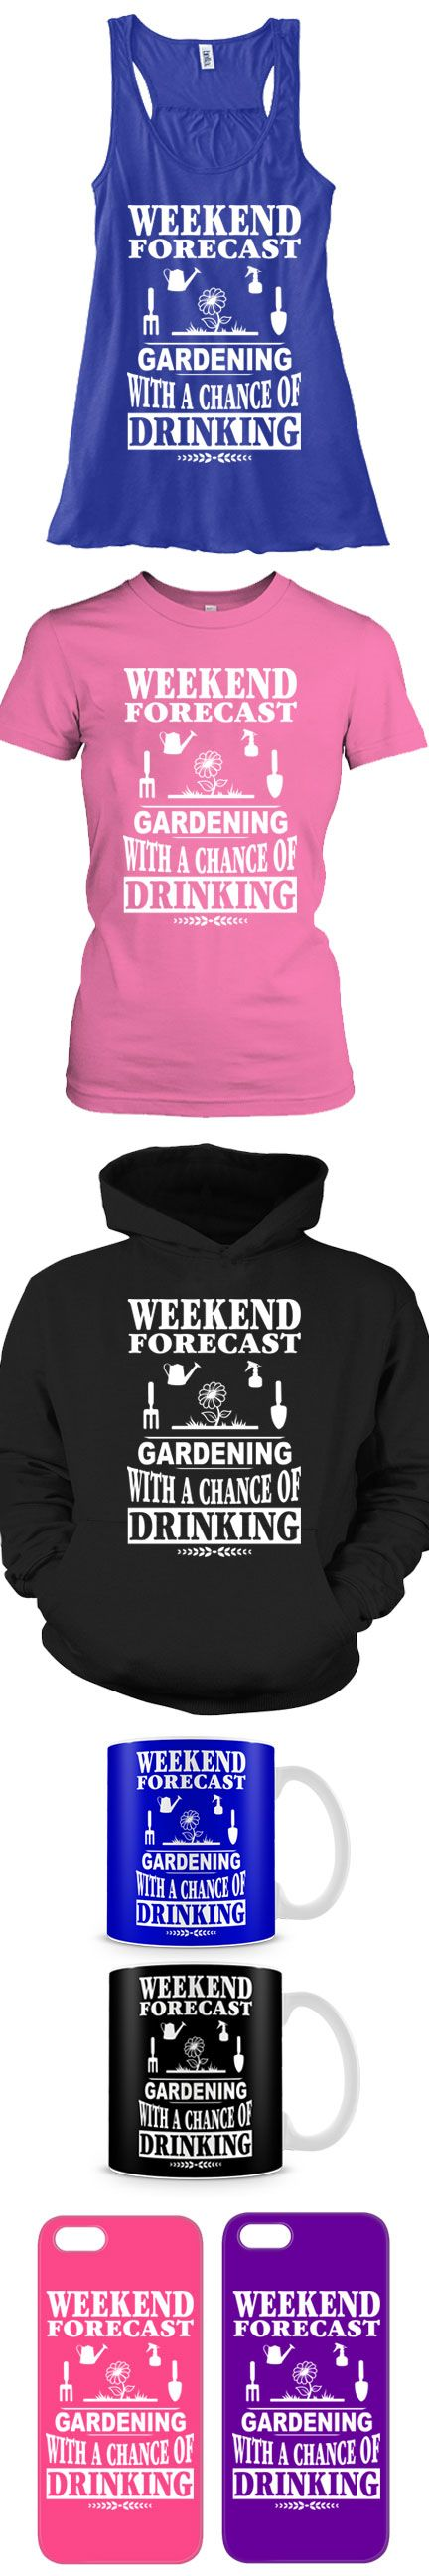 Love Gardening On Weekends?Then Click The Image To Buy It Now or Tag Someone You Want To Buy This For.